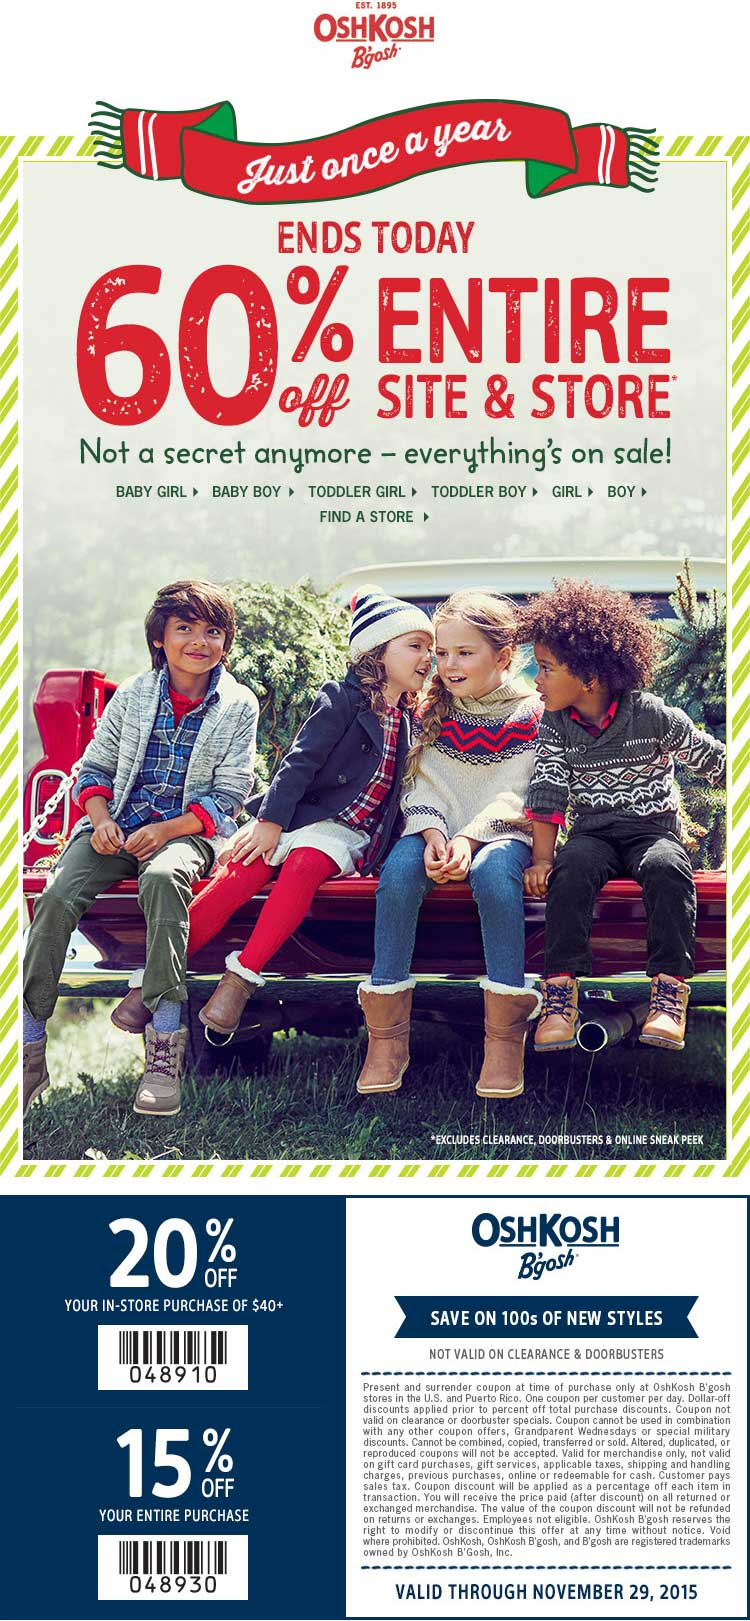 OshKosh Bgosh Coupon May 2018 60% off everything today at Carters & OshKosh Bgosh, ditto online